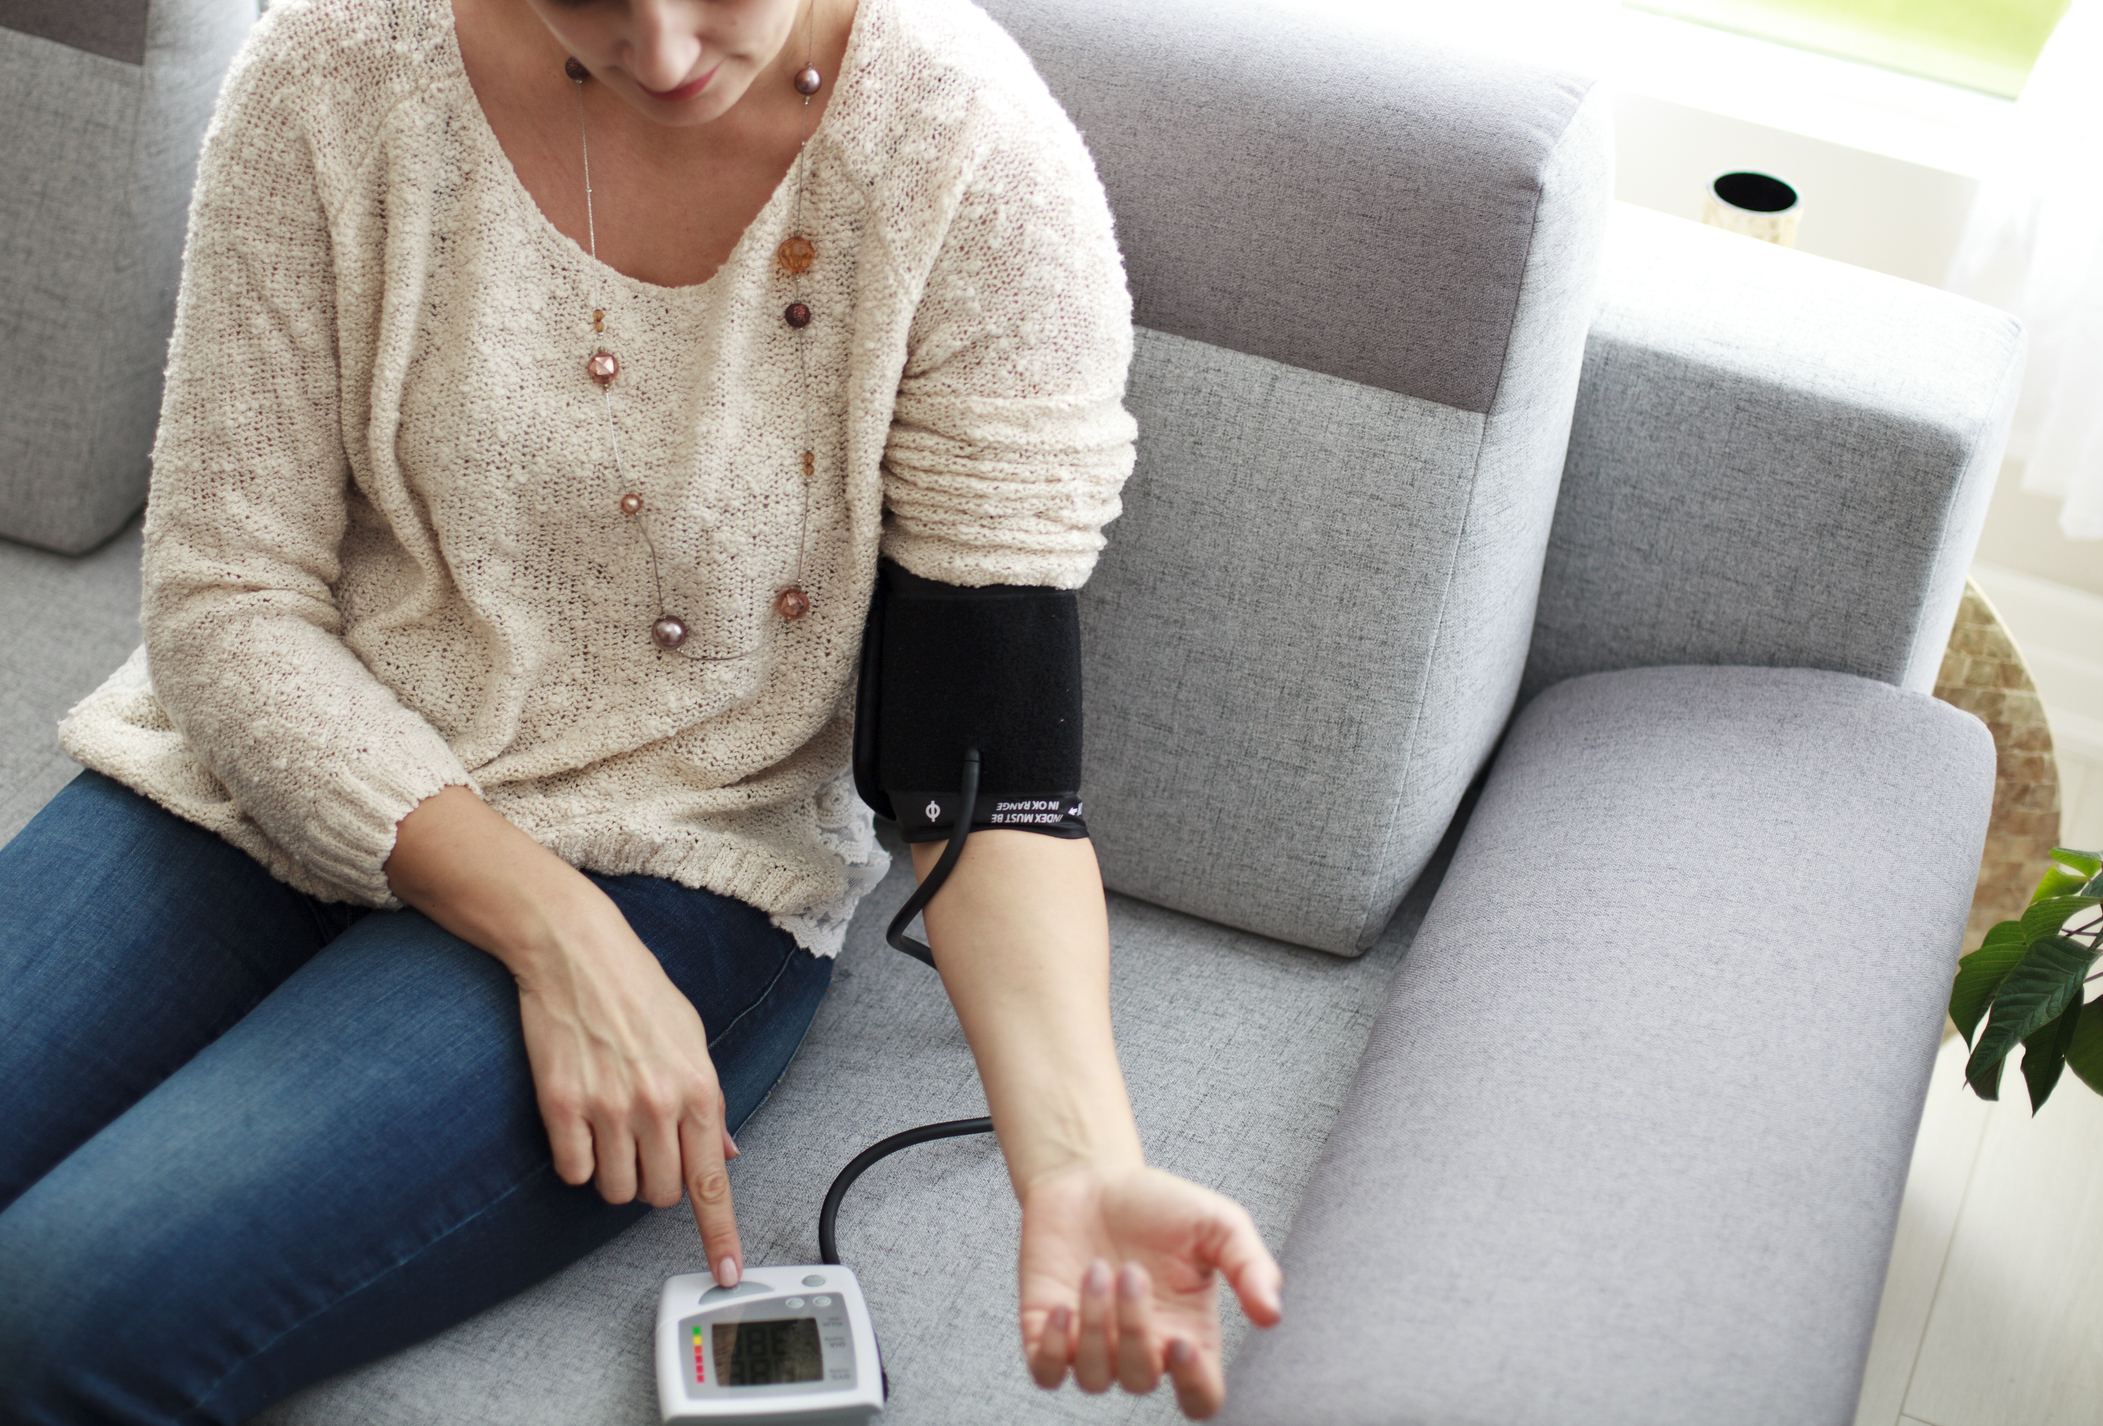 Woman measuring her blood pressure at home